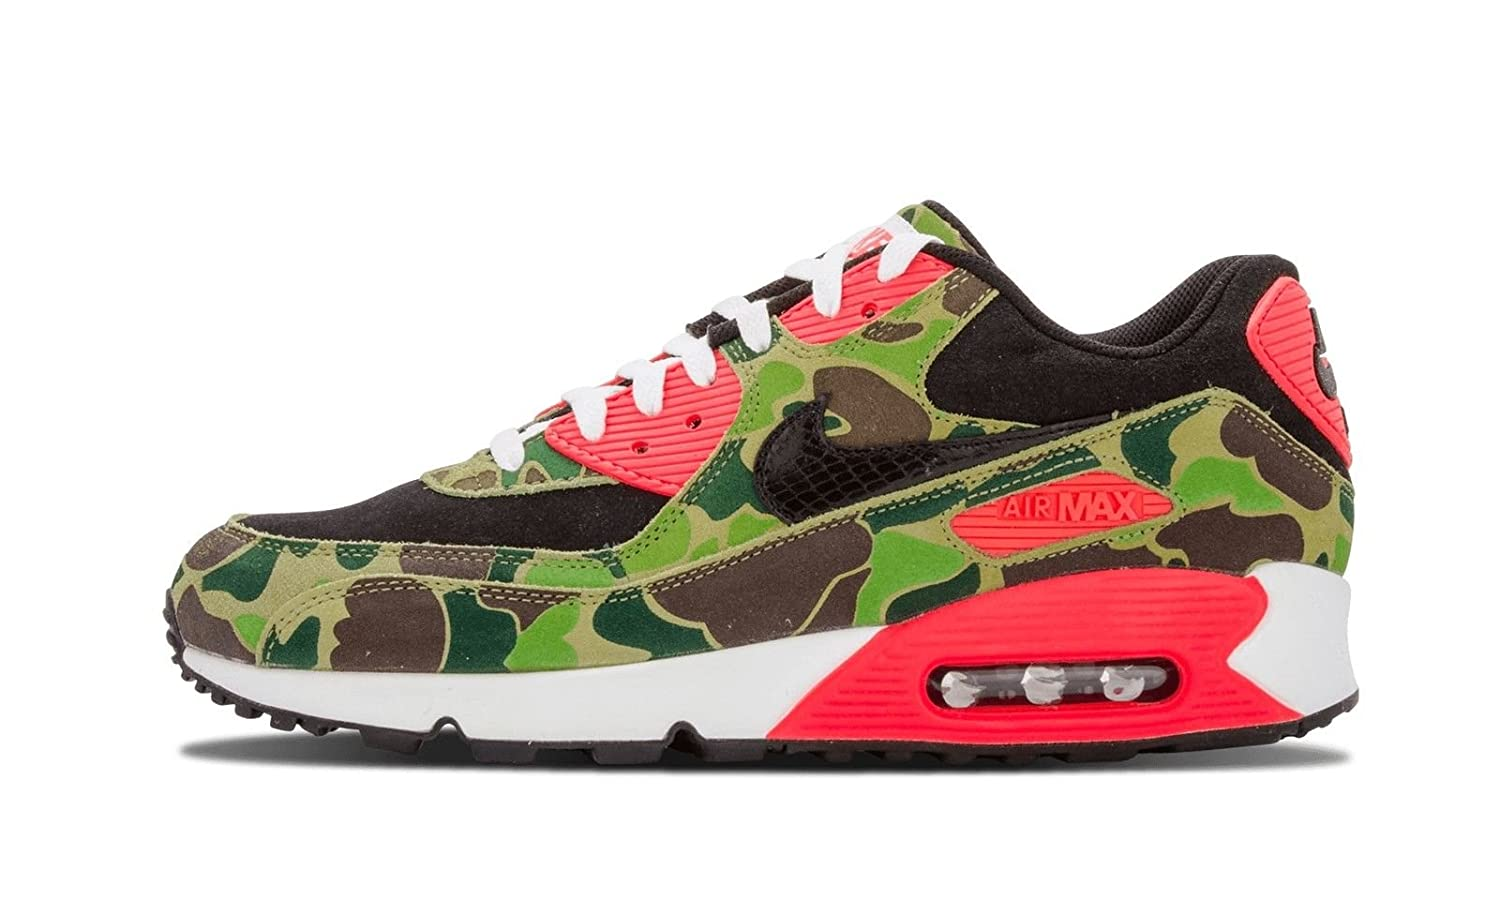 Details about Nike air max 90 camo Nike Baby nike Trainers Shoes infant size 5.5 uk